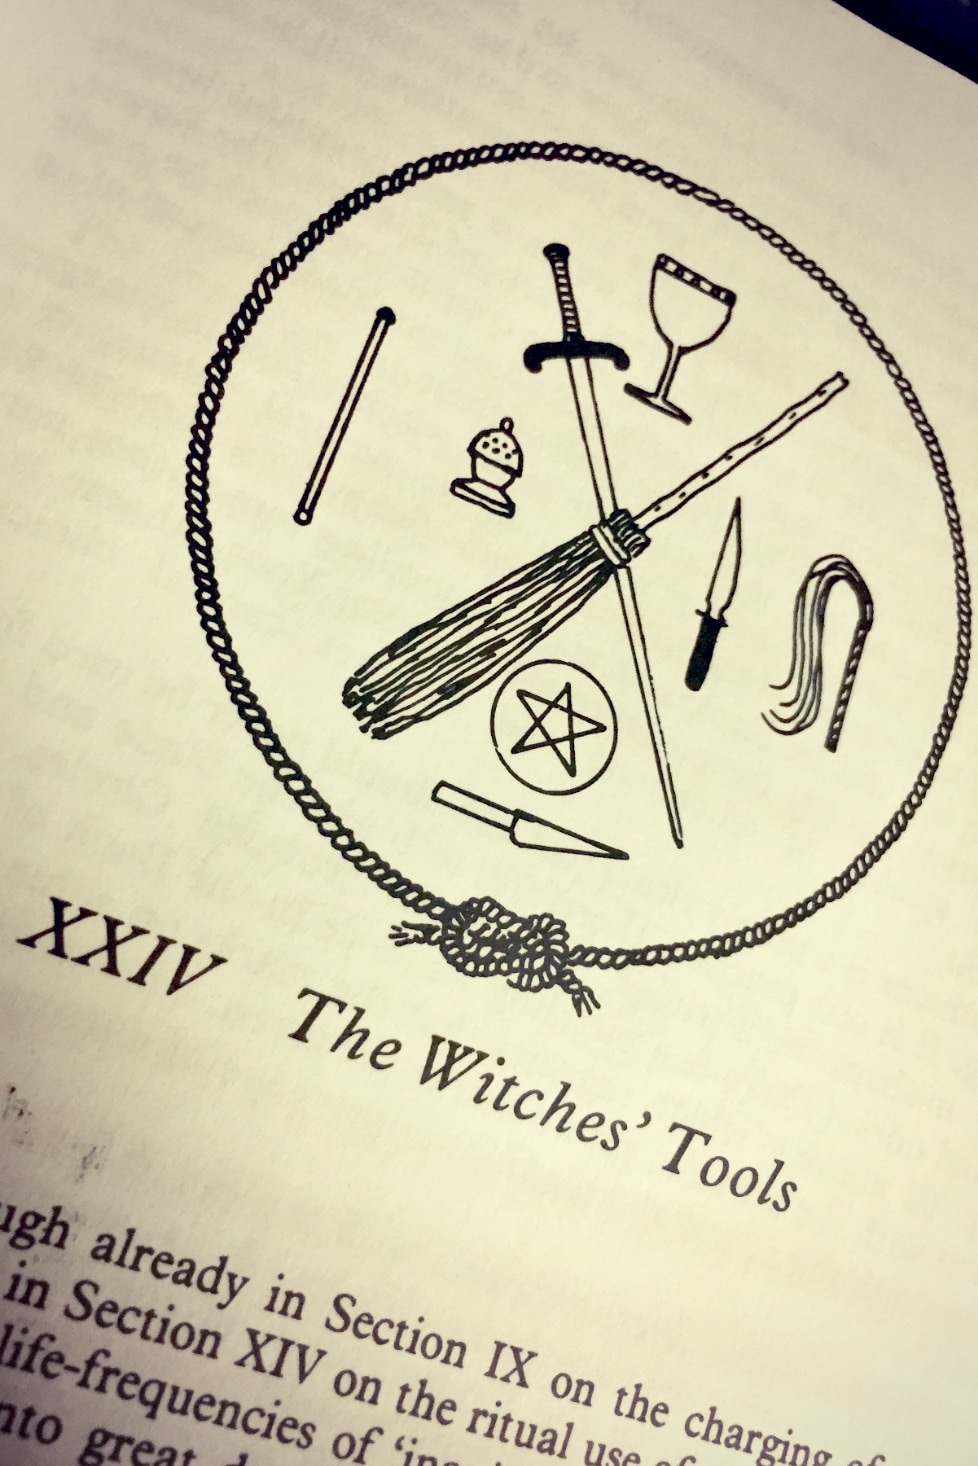 The Witches' Bible - Farrars - The Witches' Tools